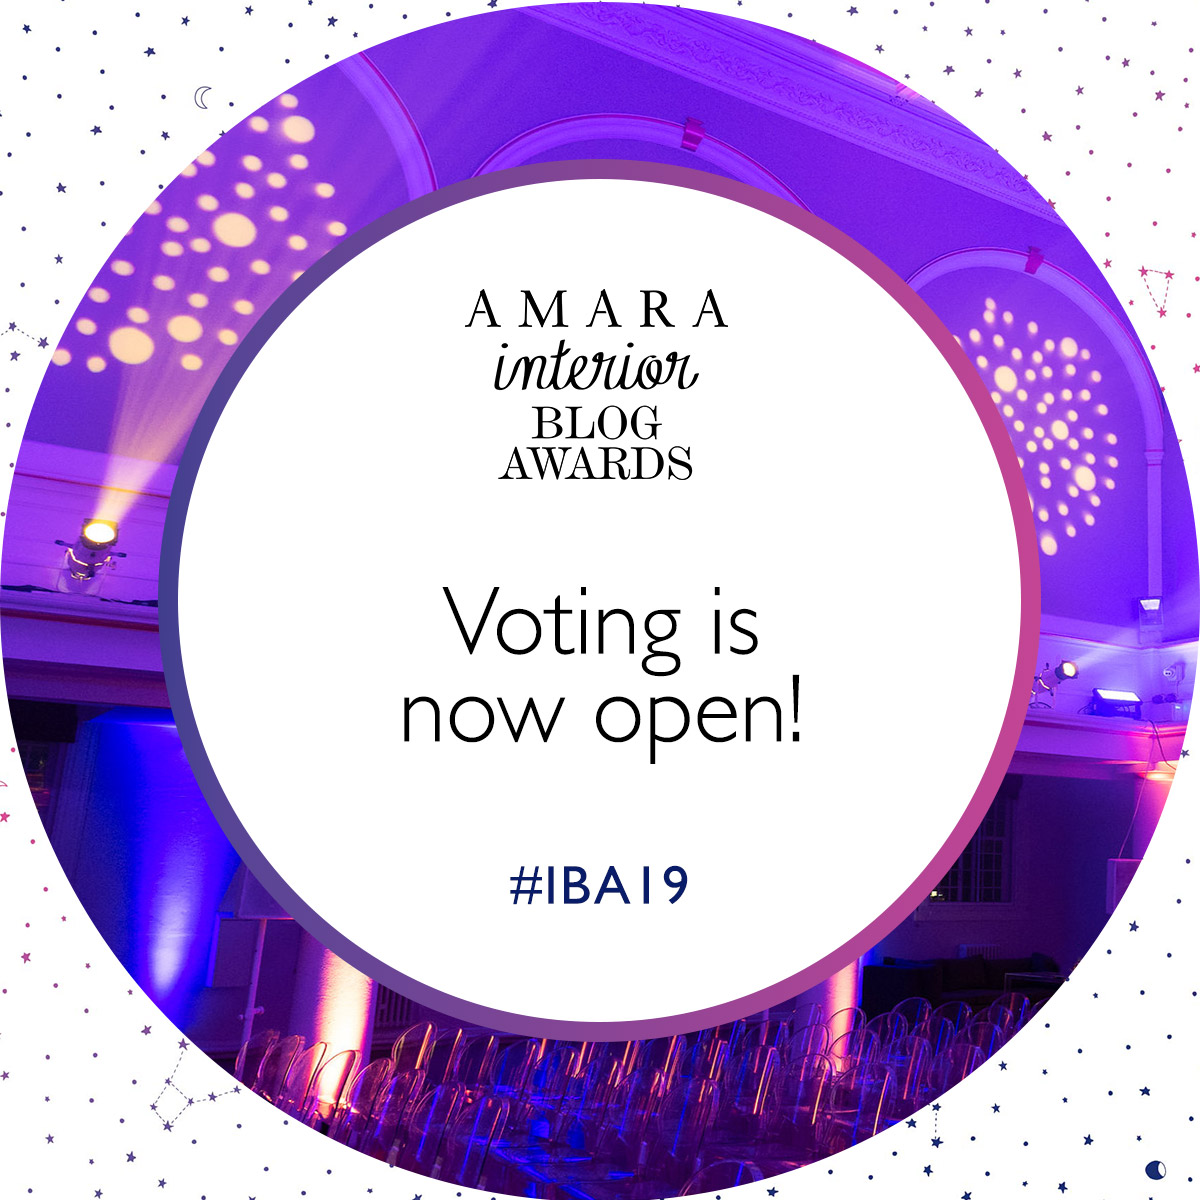 The Amara interiors blog awards voting banner 2019.